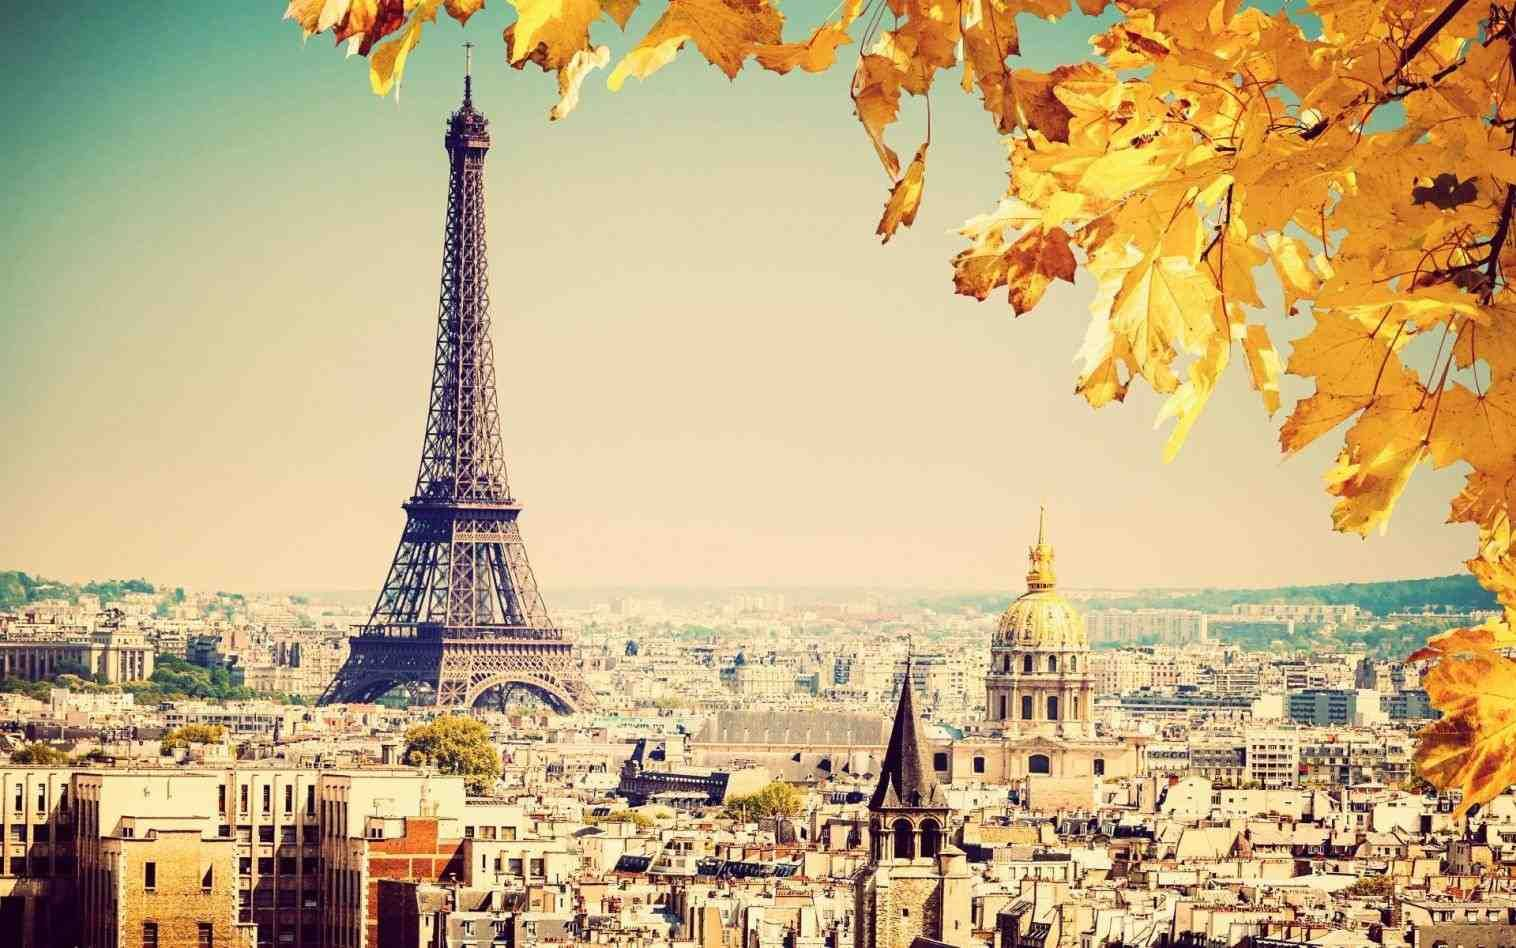 paris tumblr backgrounds › Paris